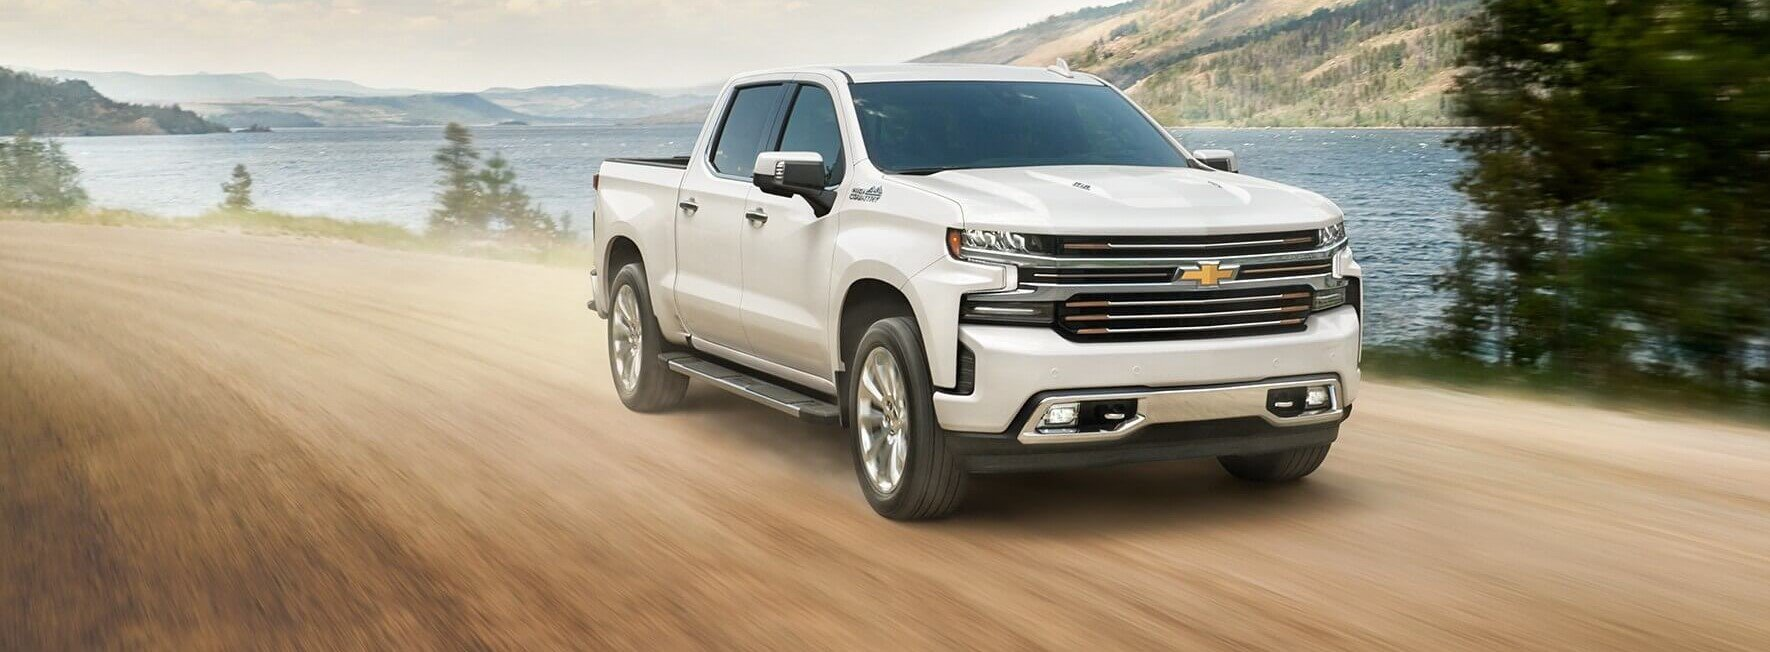 Truck Lease Deals >> Chevy Silverado 1500 Lease Deals Specials For Sale